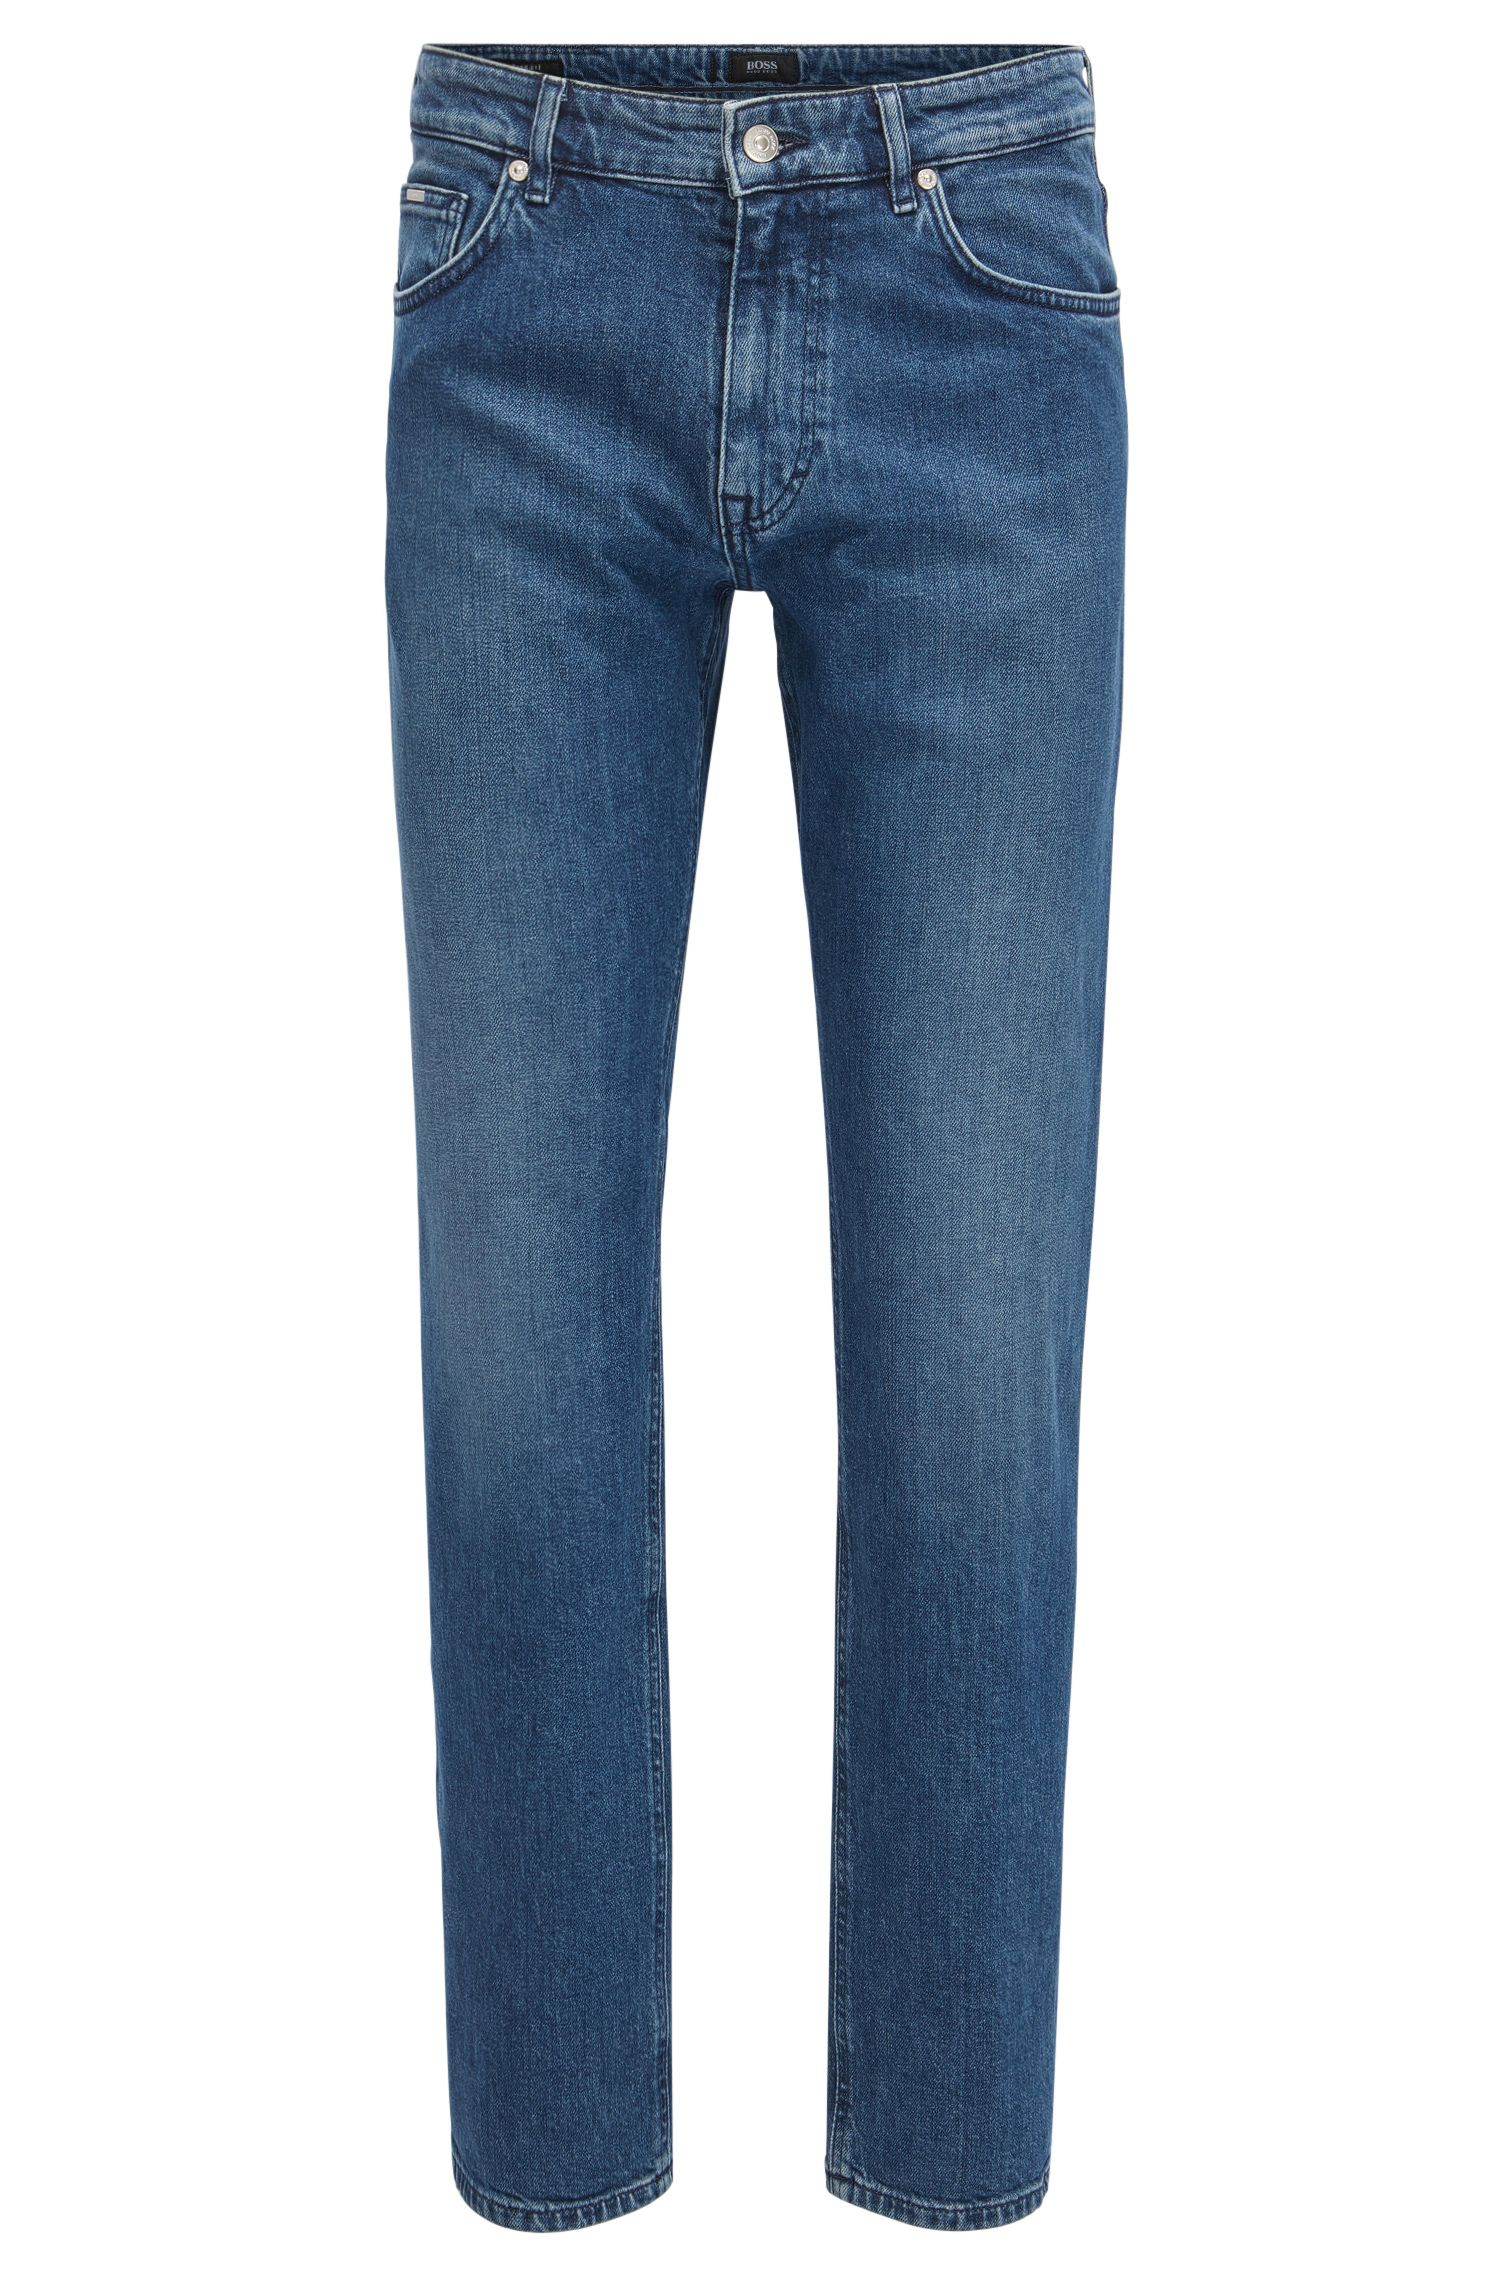 Stretch Cotton Jean, Relaxed Fit | Albany, Blue